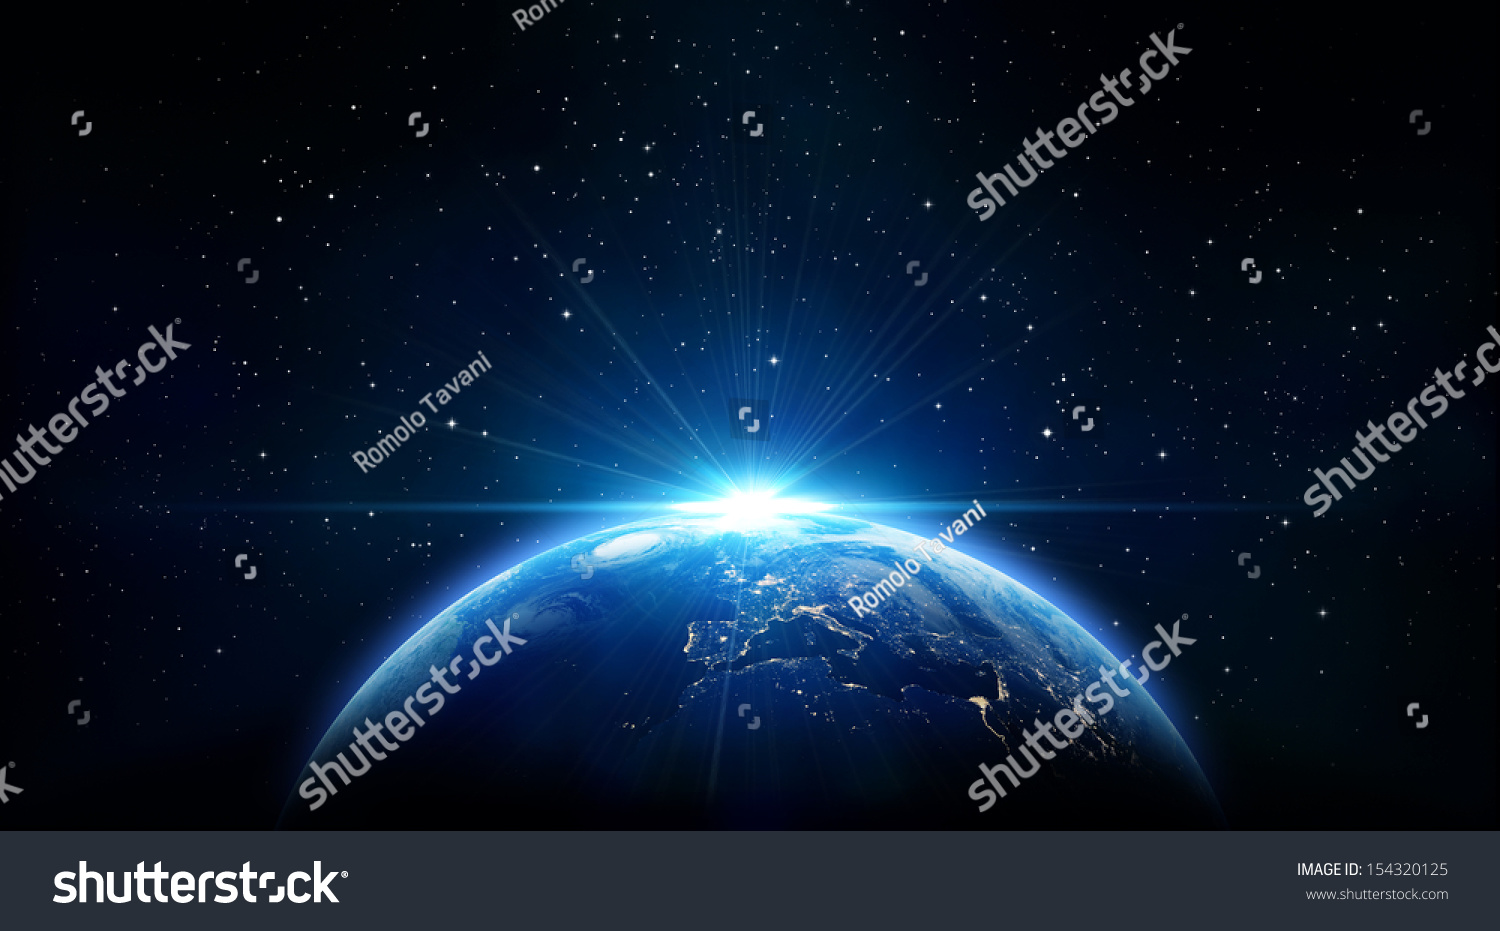 blue sunrise, view of earth from space #154320125